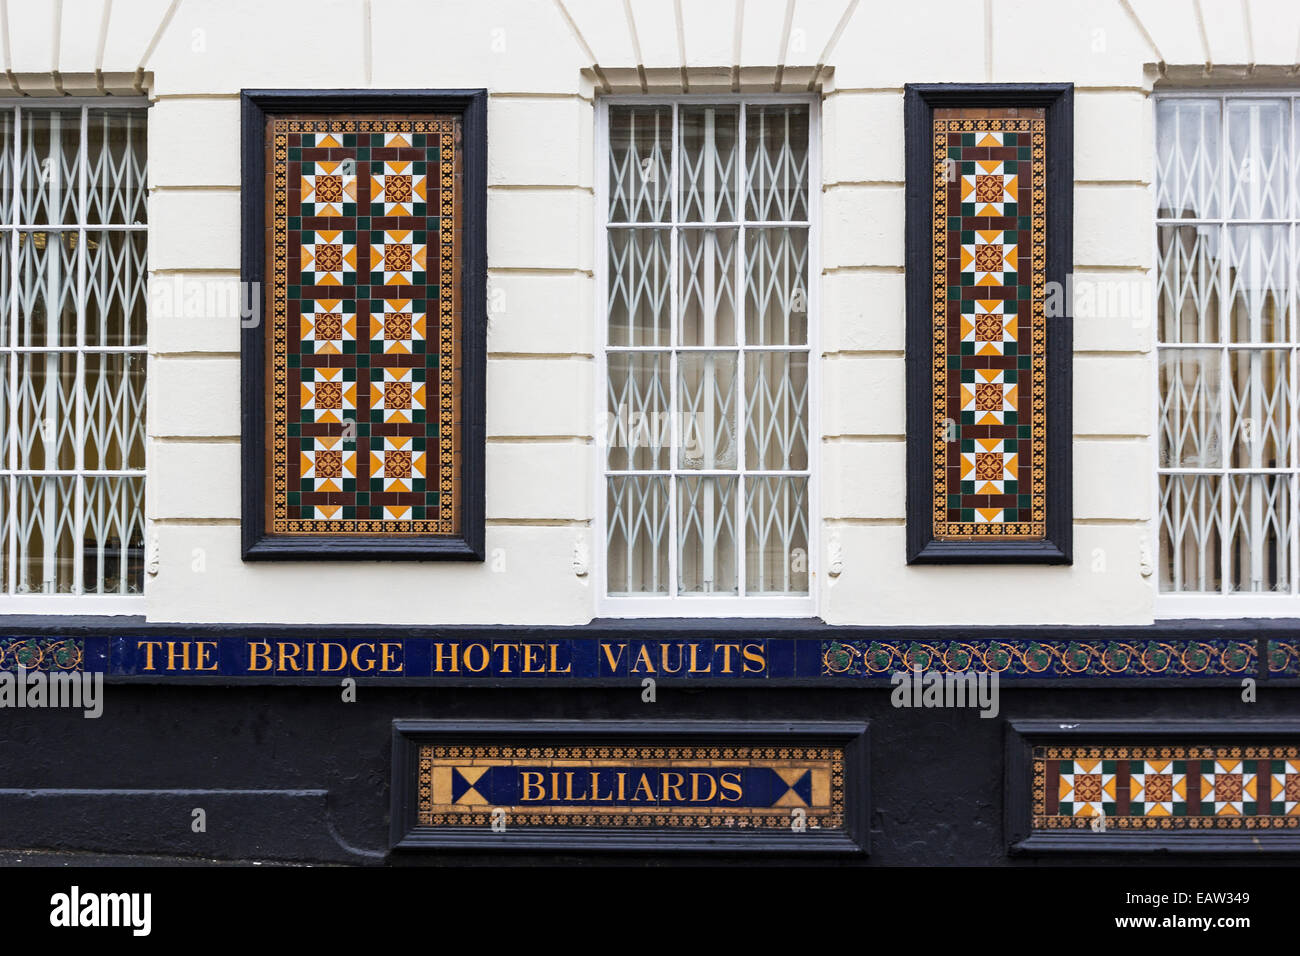 Billiards sign and ornate facia of a public house in Sunderland depicting an earlier era. - Stock Image